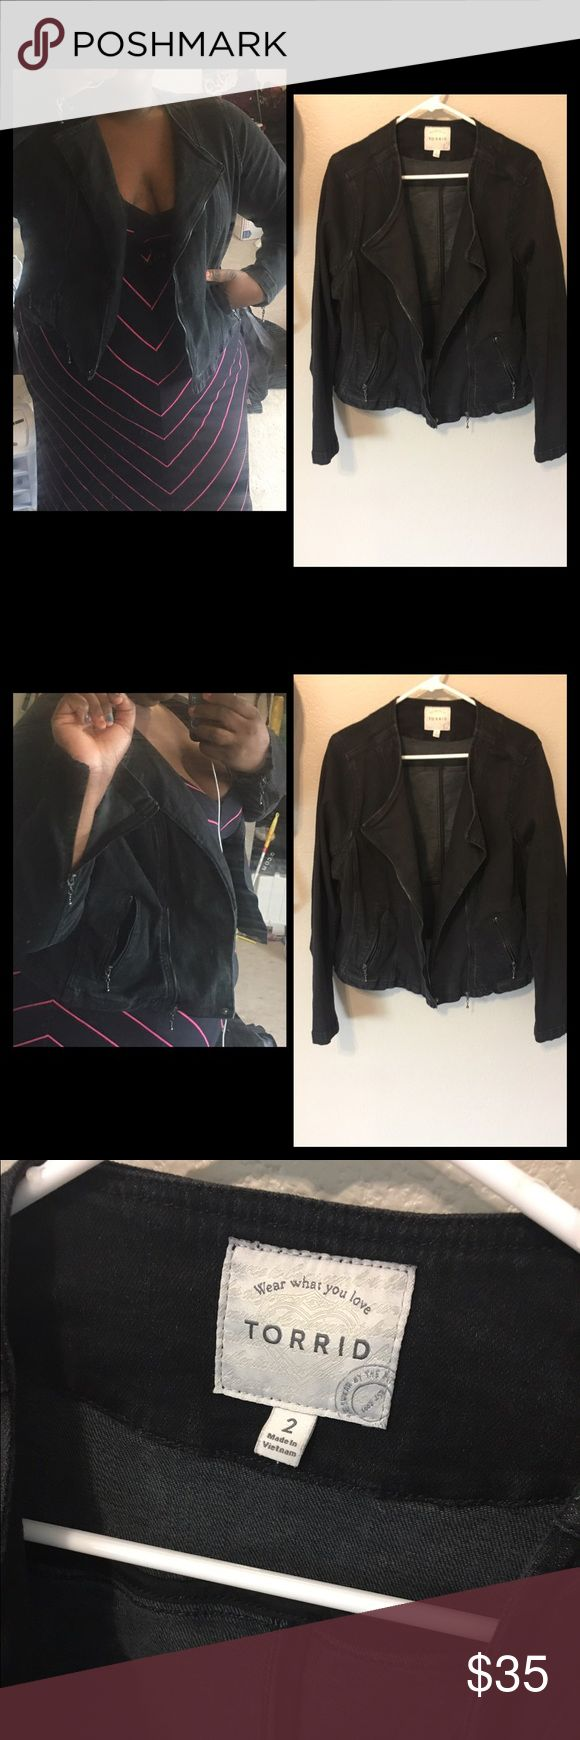 Torrid moto black jean jacket size 2 Purchased from torrid never worn out has cute vintage feel washed out black color with zipper sleeves moto jacket cut has lightweight stretch great for chilly summer fall days  has pockets torrid Jackets & Coats Jean Jackets